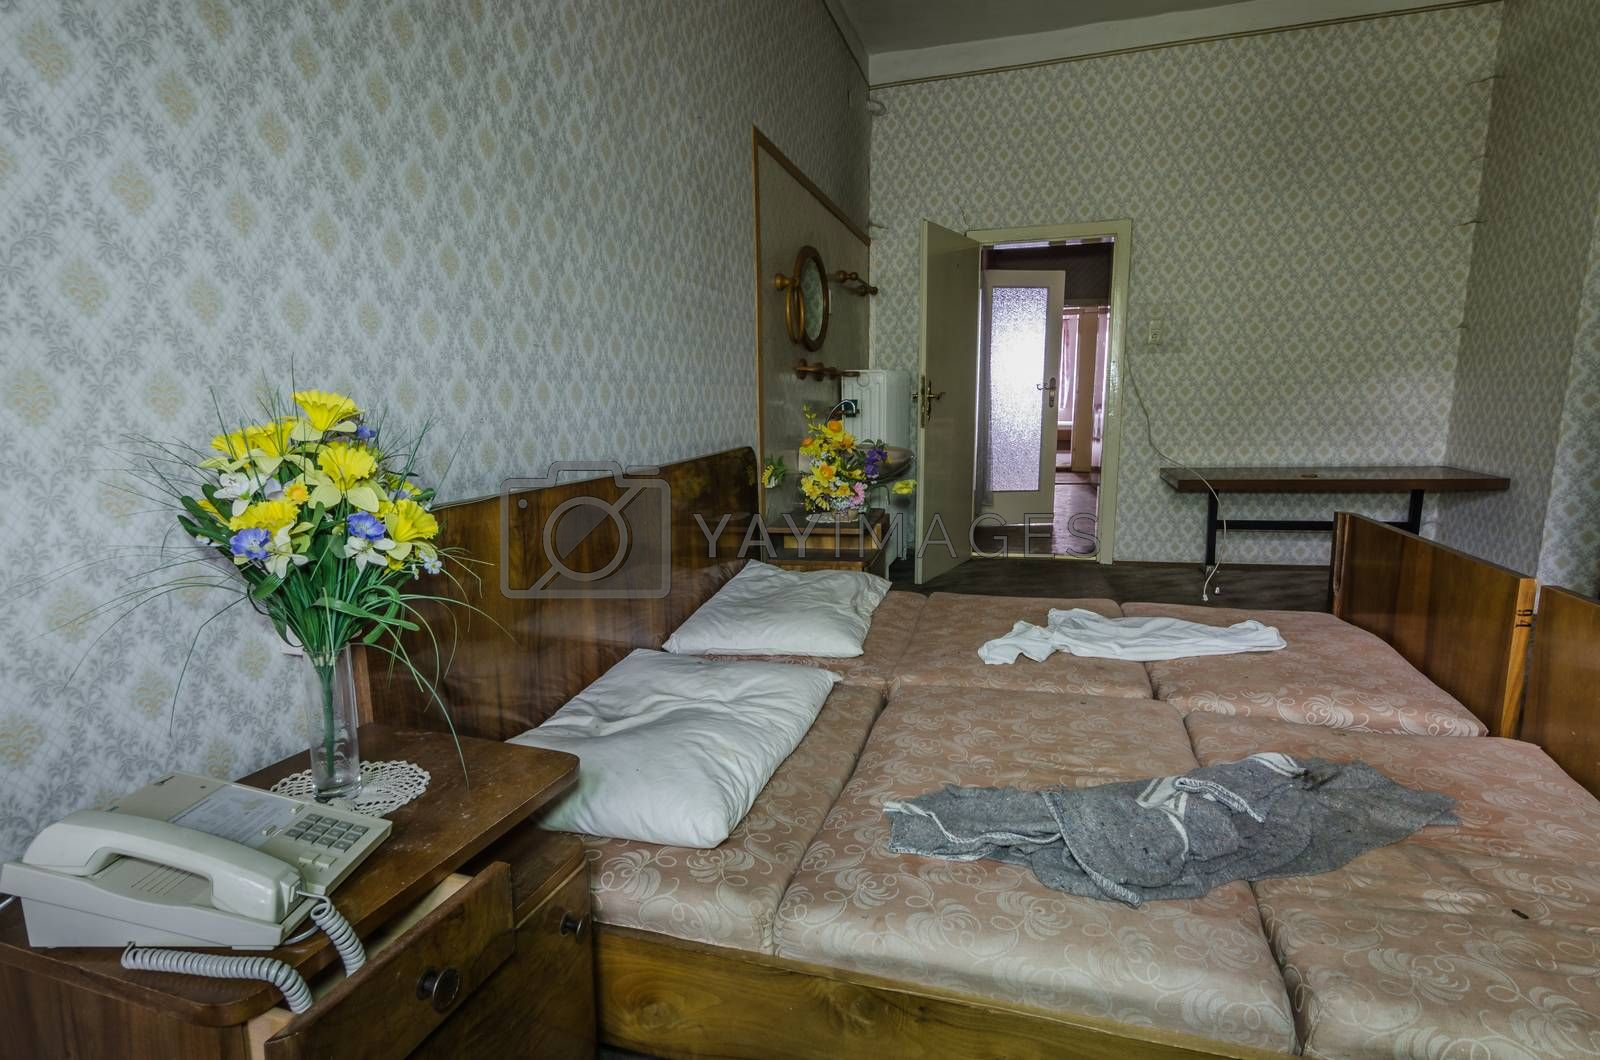 yellow flowers near a bed in hotel room by thomaseder